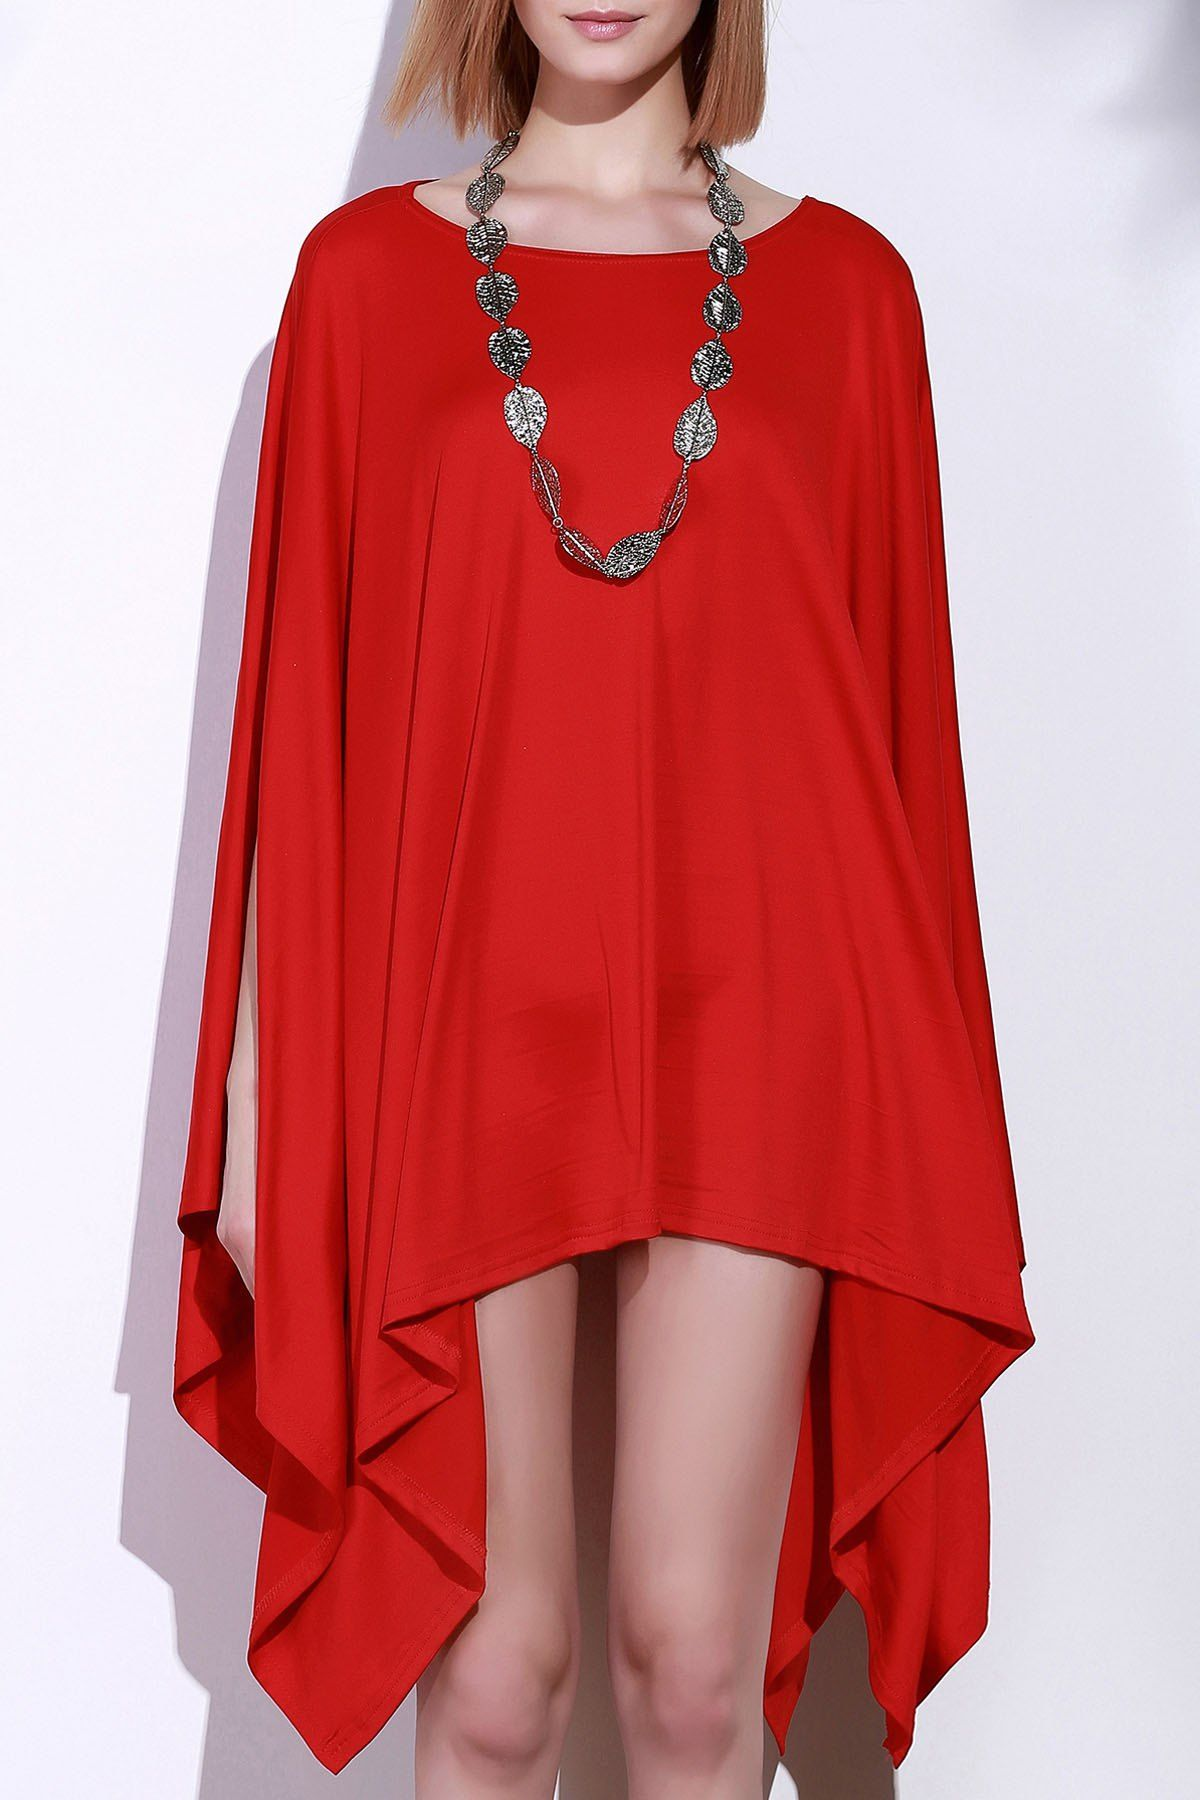 Batwing sleeve handkerchief caped plus size top stylish clothes